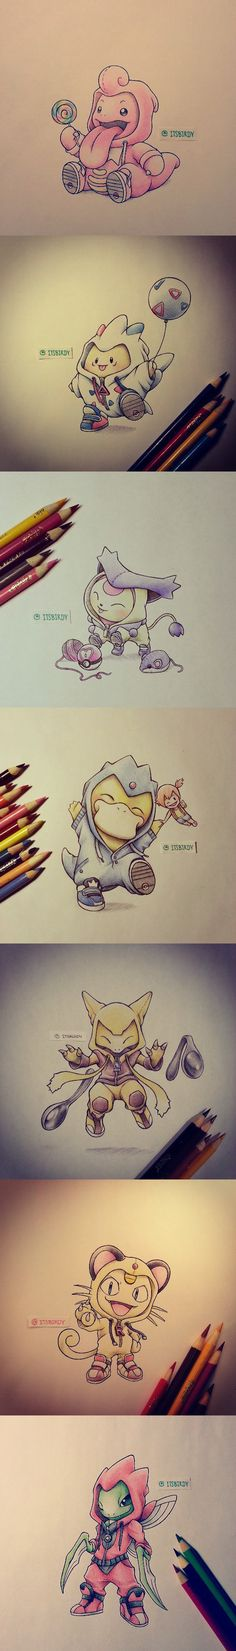 pokemon wearing evolution | Pokemon wearing evolution costumes... - The Meta Picture